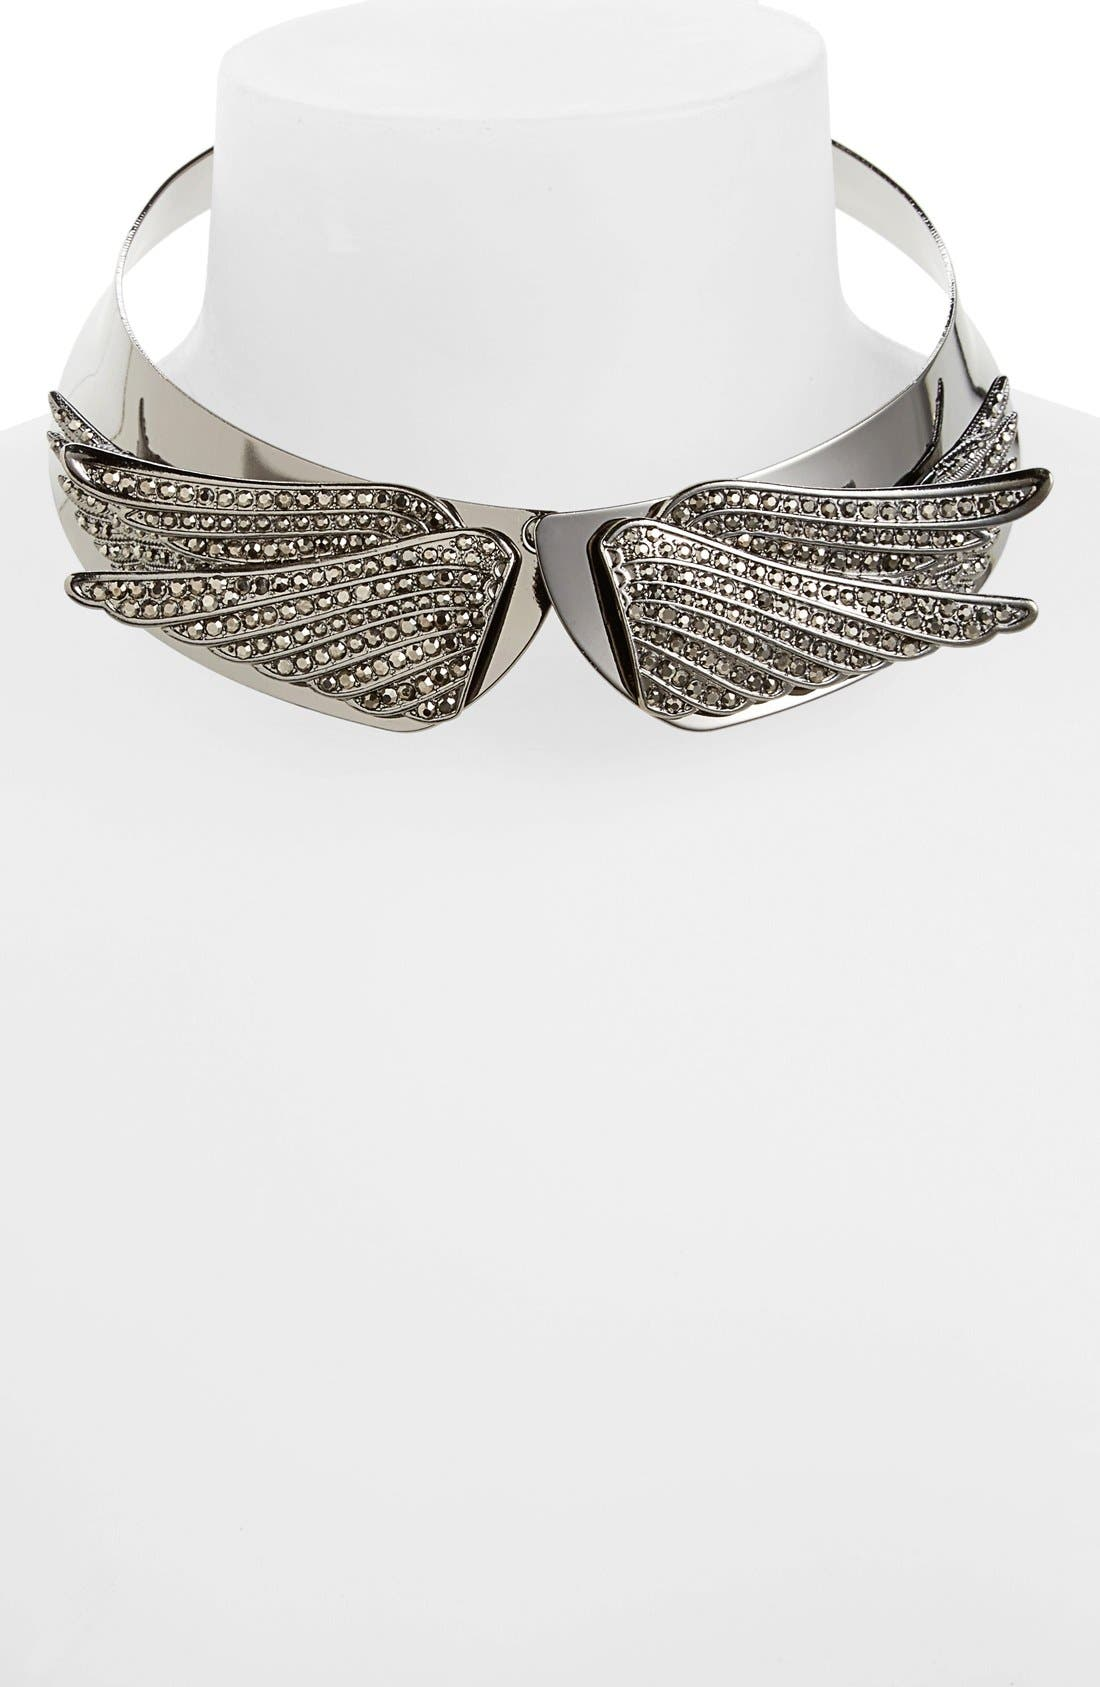 Main Image - Leith 'Wings' Collar Necklace